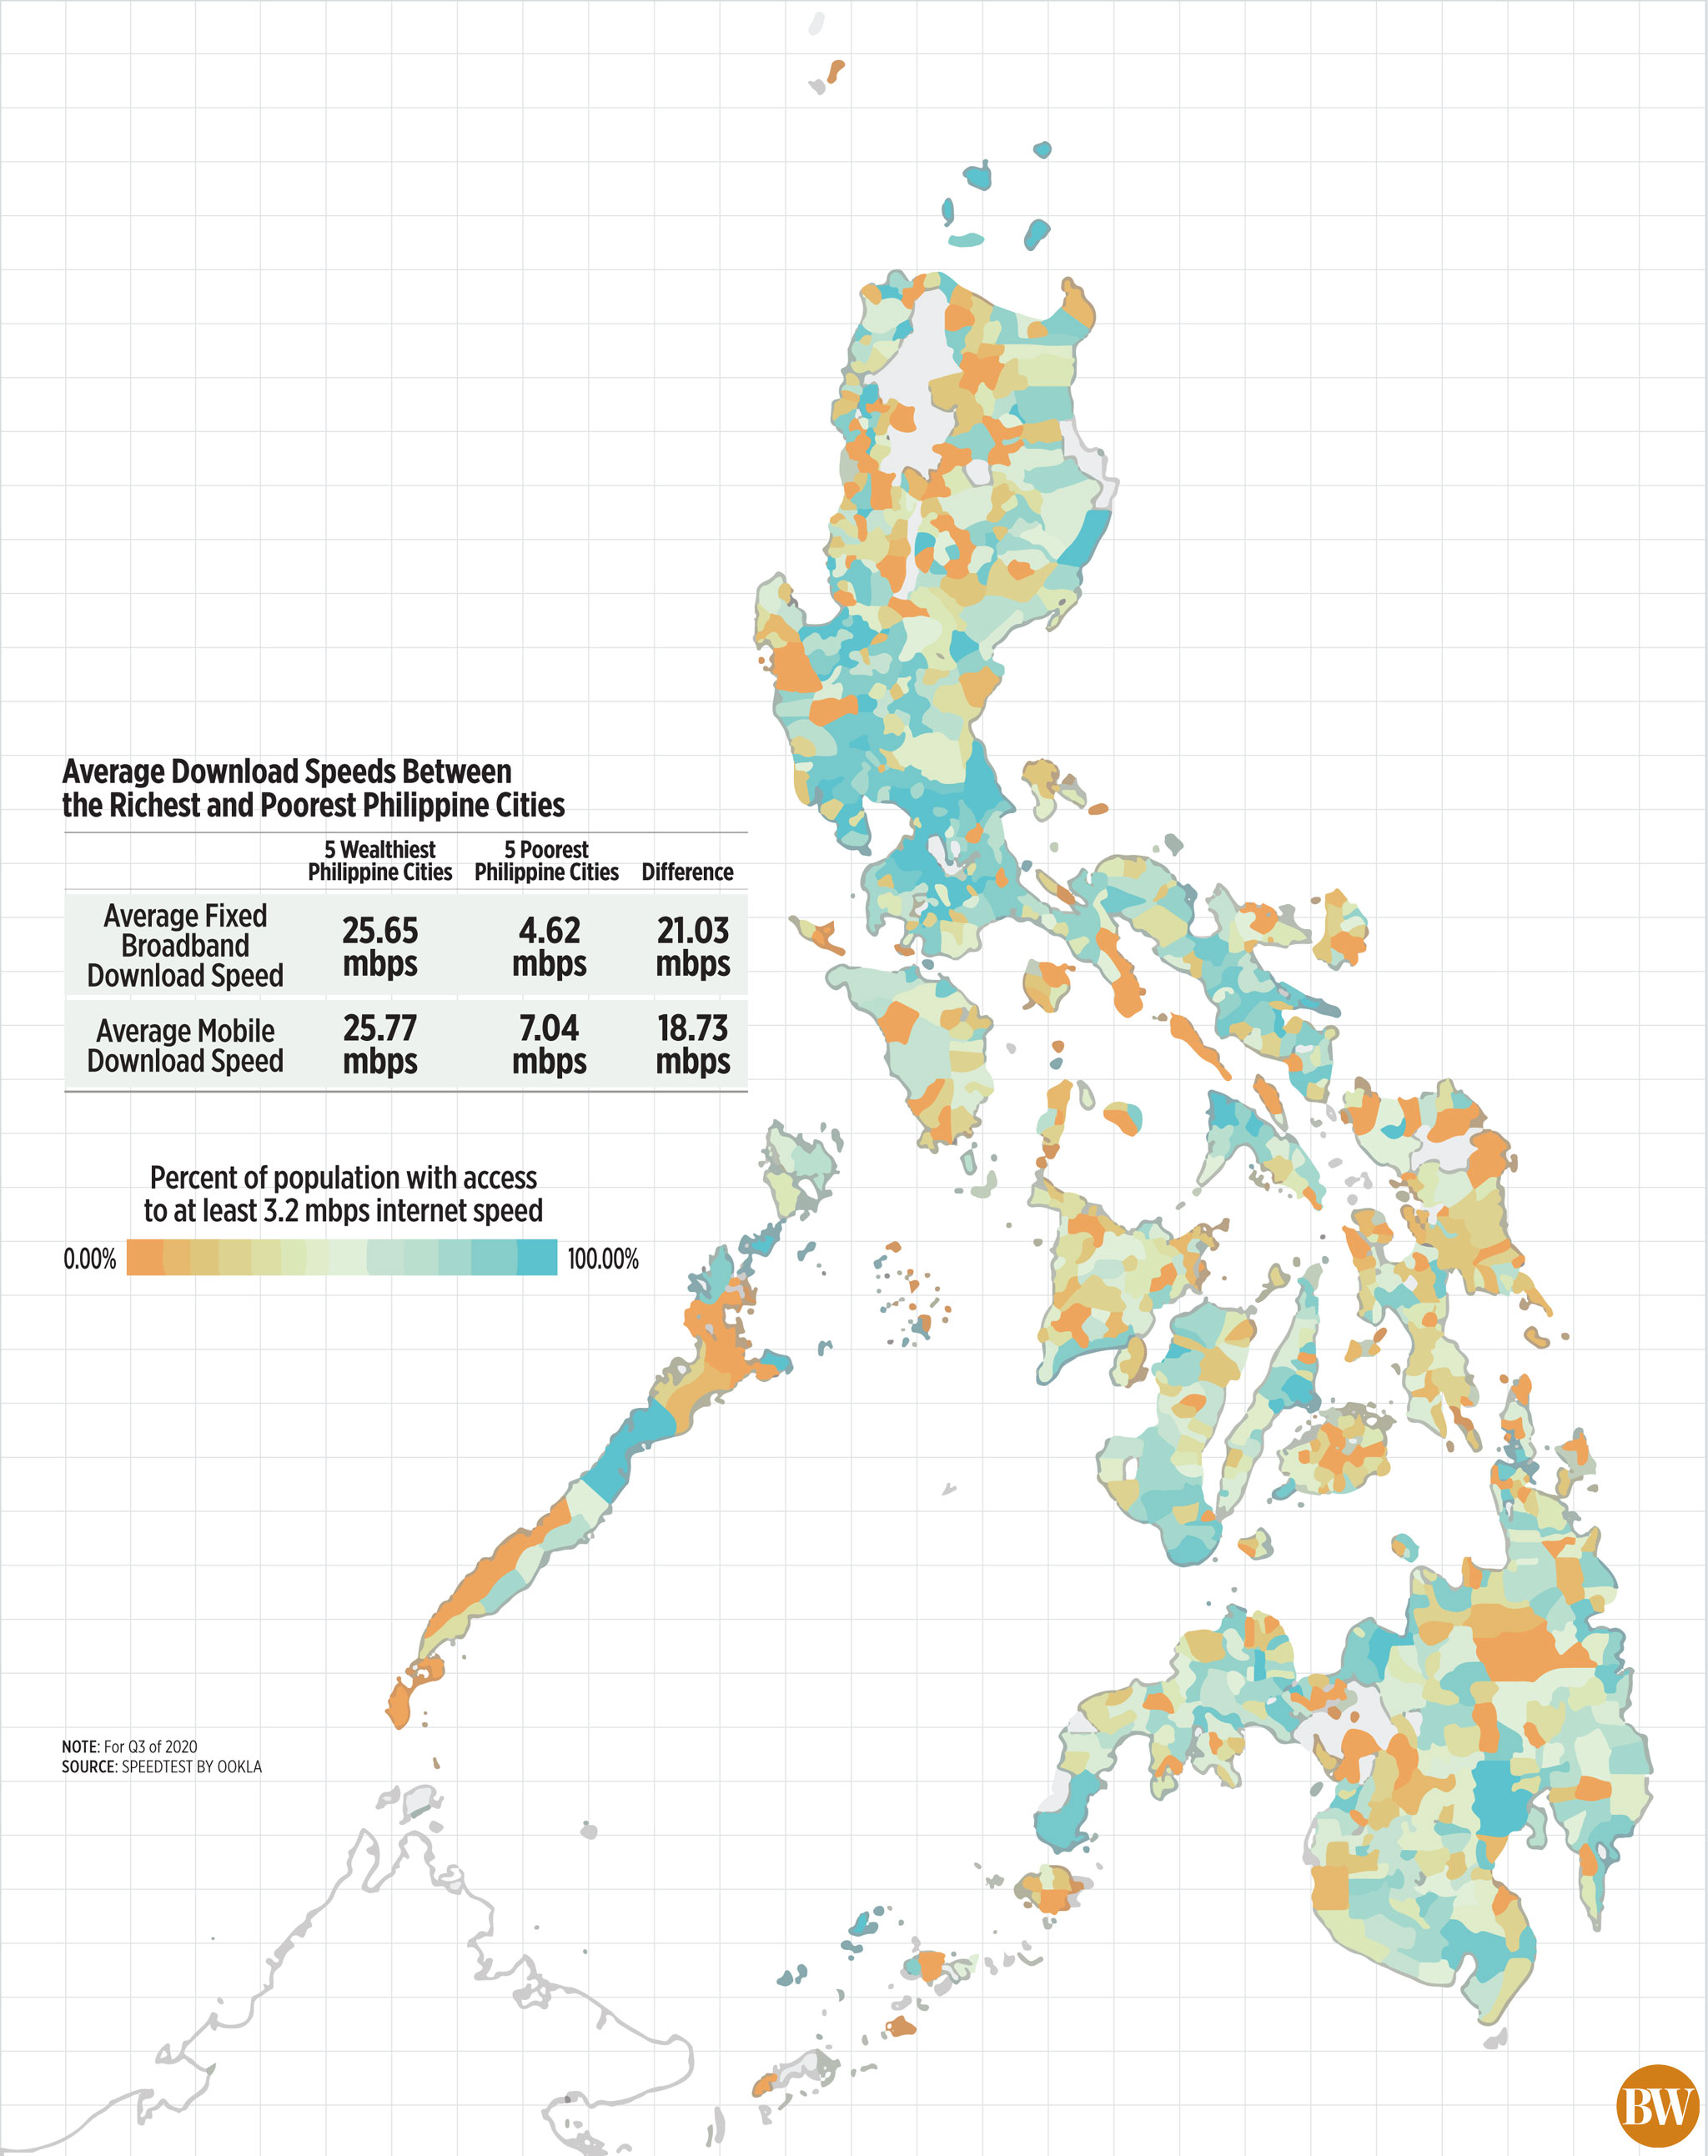 Average Download Speed Between the Richest and Poorest Philippine Cities